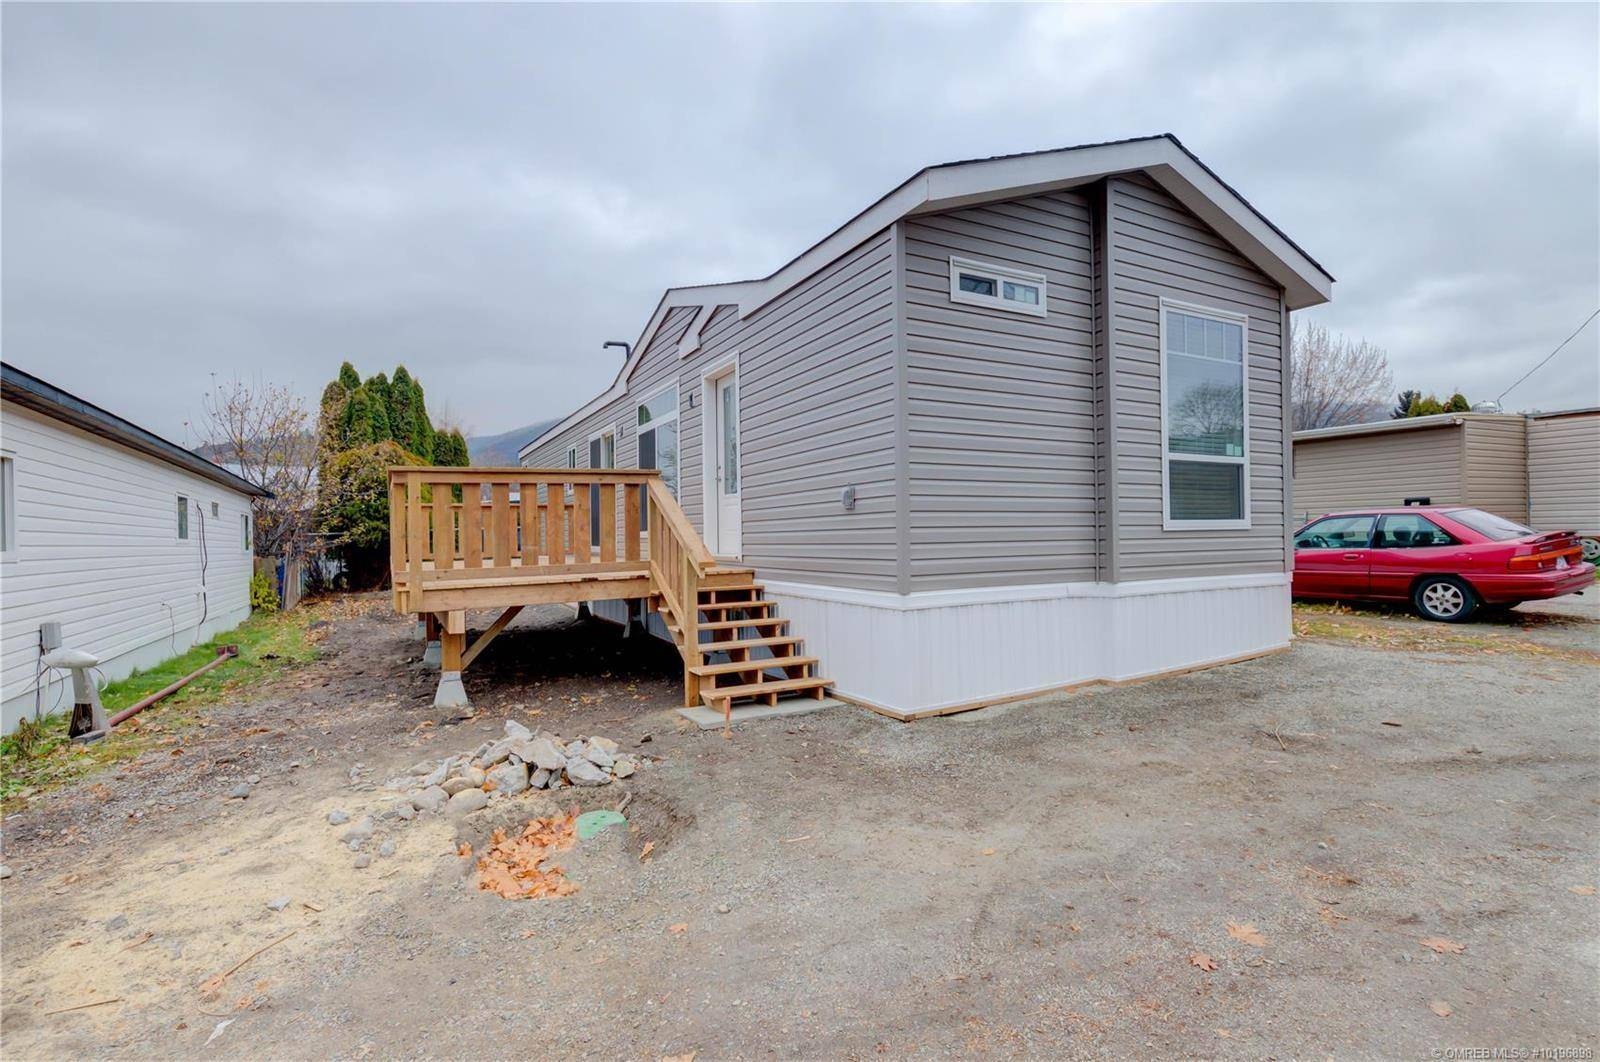 Home for sale at 1699 Ross Rd Unit 201 West Kelowna British Columbia - MLS: 10196898